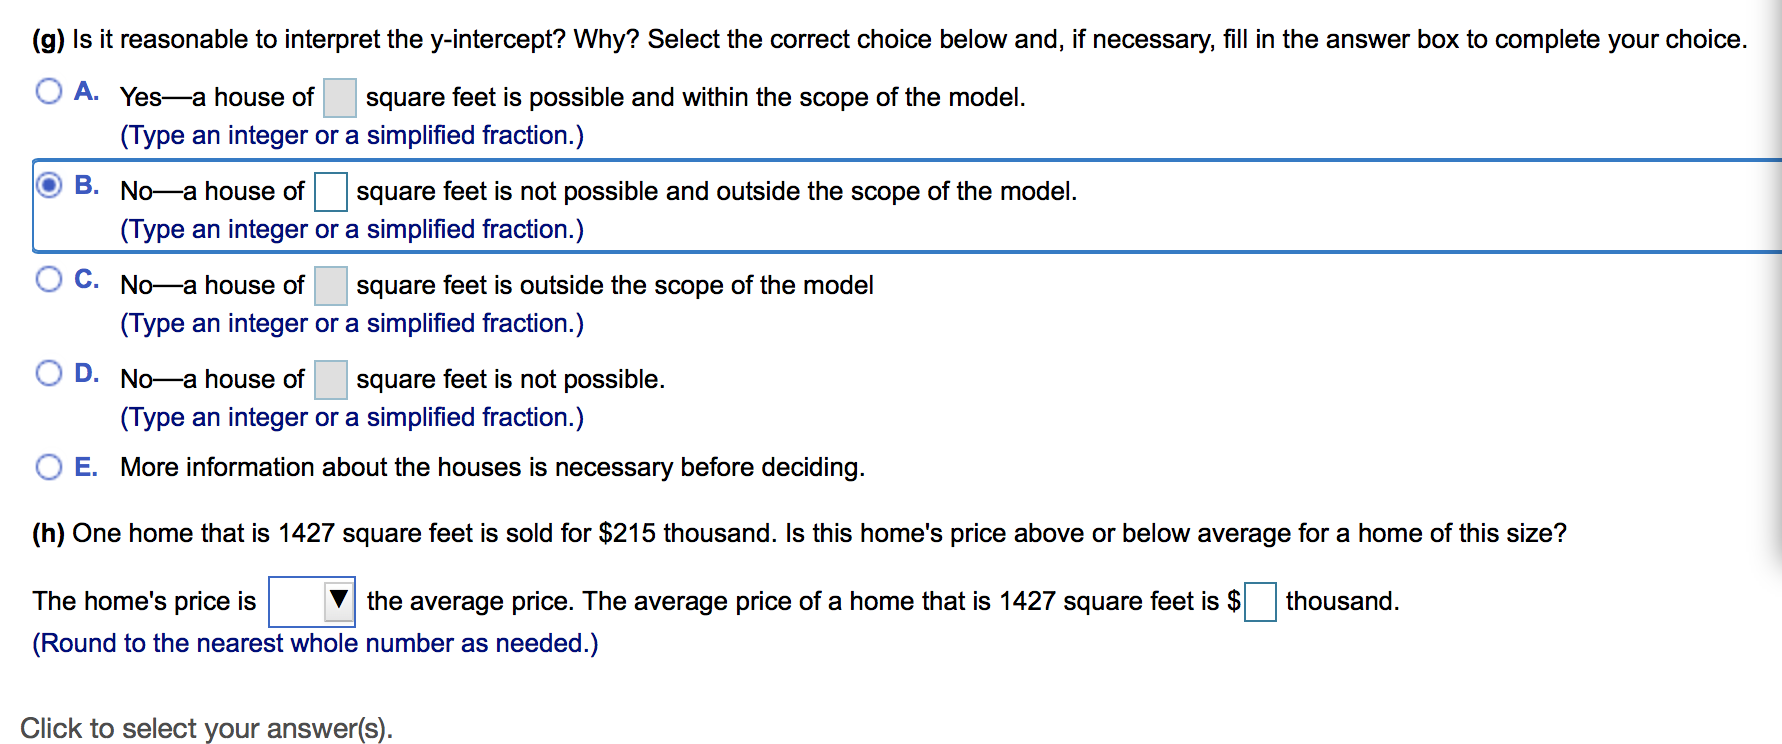 (g) Is it reasonable to interpret the y-intercept? Why? Select the correct choice below and, if necessary, fill in the answer box to complete your choice A. Yes-a house of square feet is possible and within the scope of the model (Type an integer or a simplified fraction.) B. No-a house of square feet is not possible and outside the scope of the model. (Type an integer or a simplified fraction.) C. No-a house of square feet is outside the scope of the model (Type an integer or a simplified fraction.) D. No-a house of square feet is not possible (Type an integer or a simplified fraction.) O E. More information about the houses is necessary before deciding (h) One home that is 1427 square feet is sold for $215 thousand. Is this home's price above or below average for a home of this size? thousand The home's price is the average price. The average price of a home that is 1427 square feet is $ (Round to the nearest whole number as needed.) Click to select your answer(s)